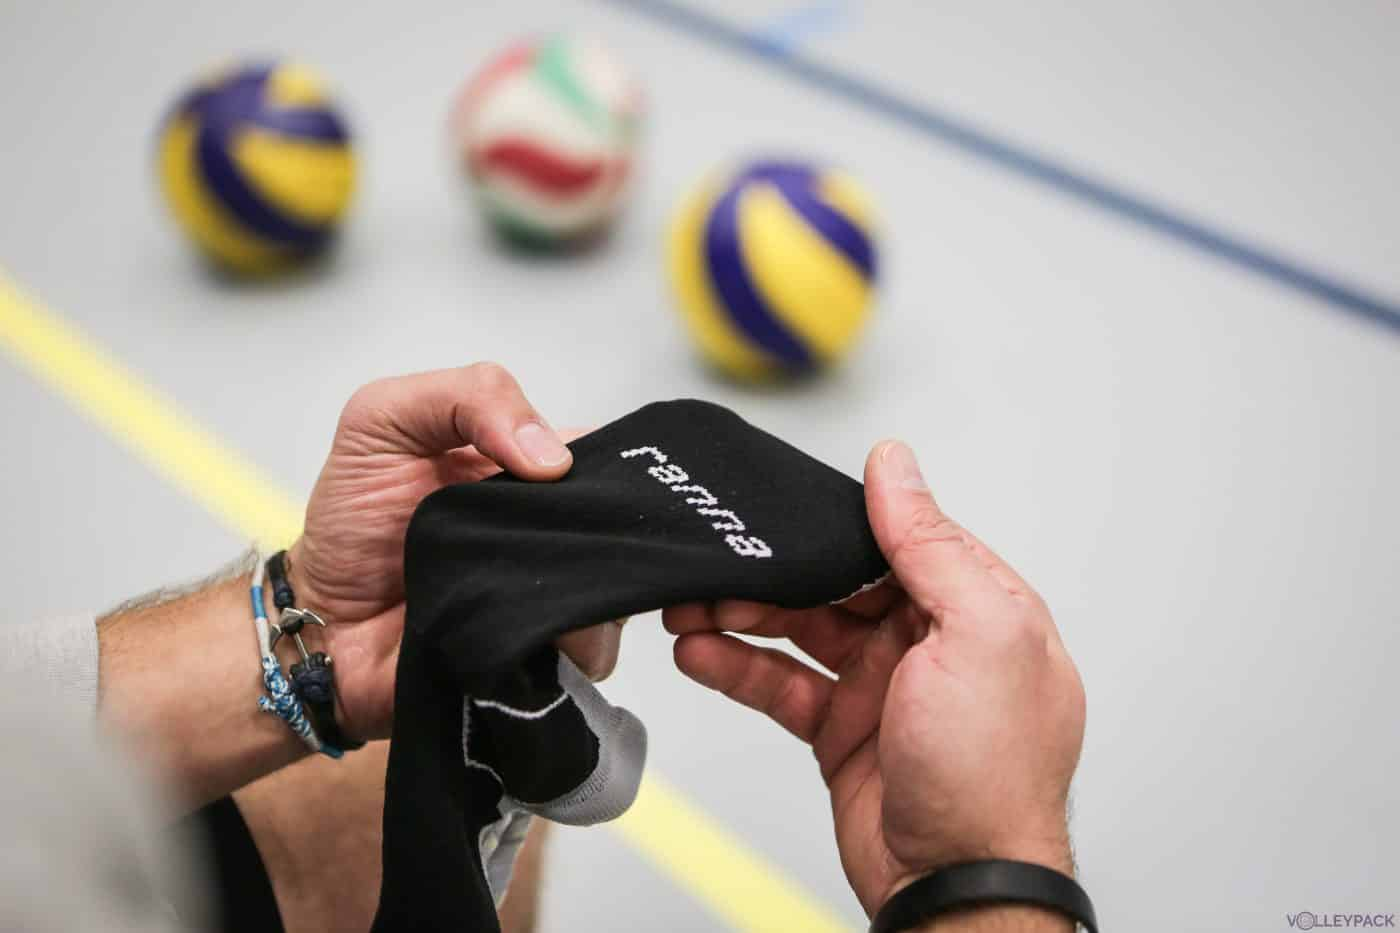 chaussettes-ranna-sport-test-volleypack-5